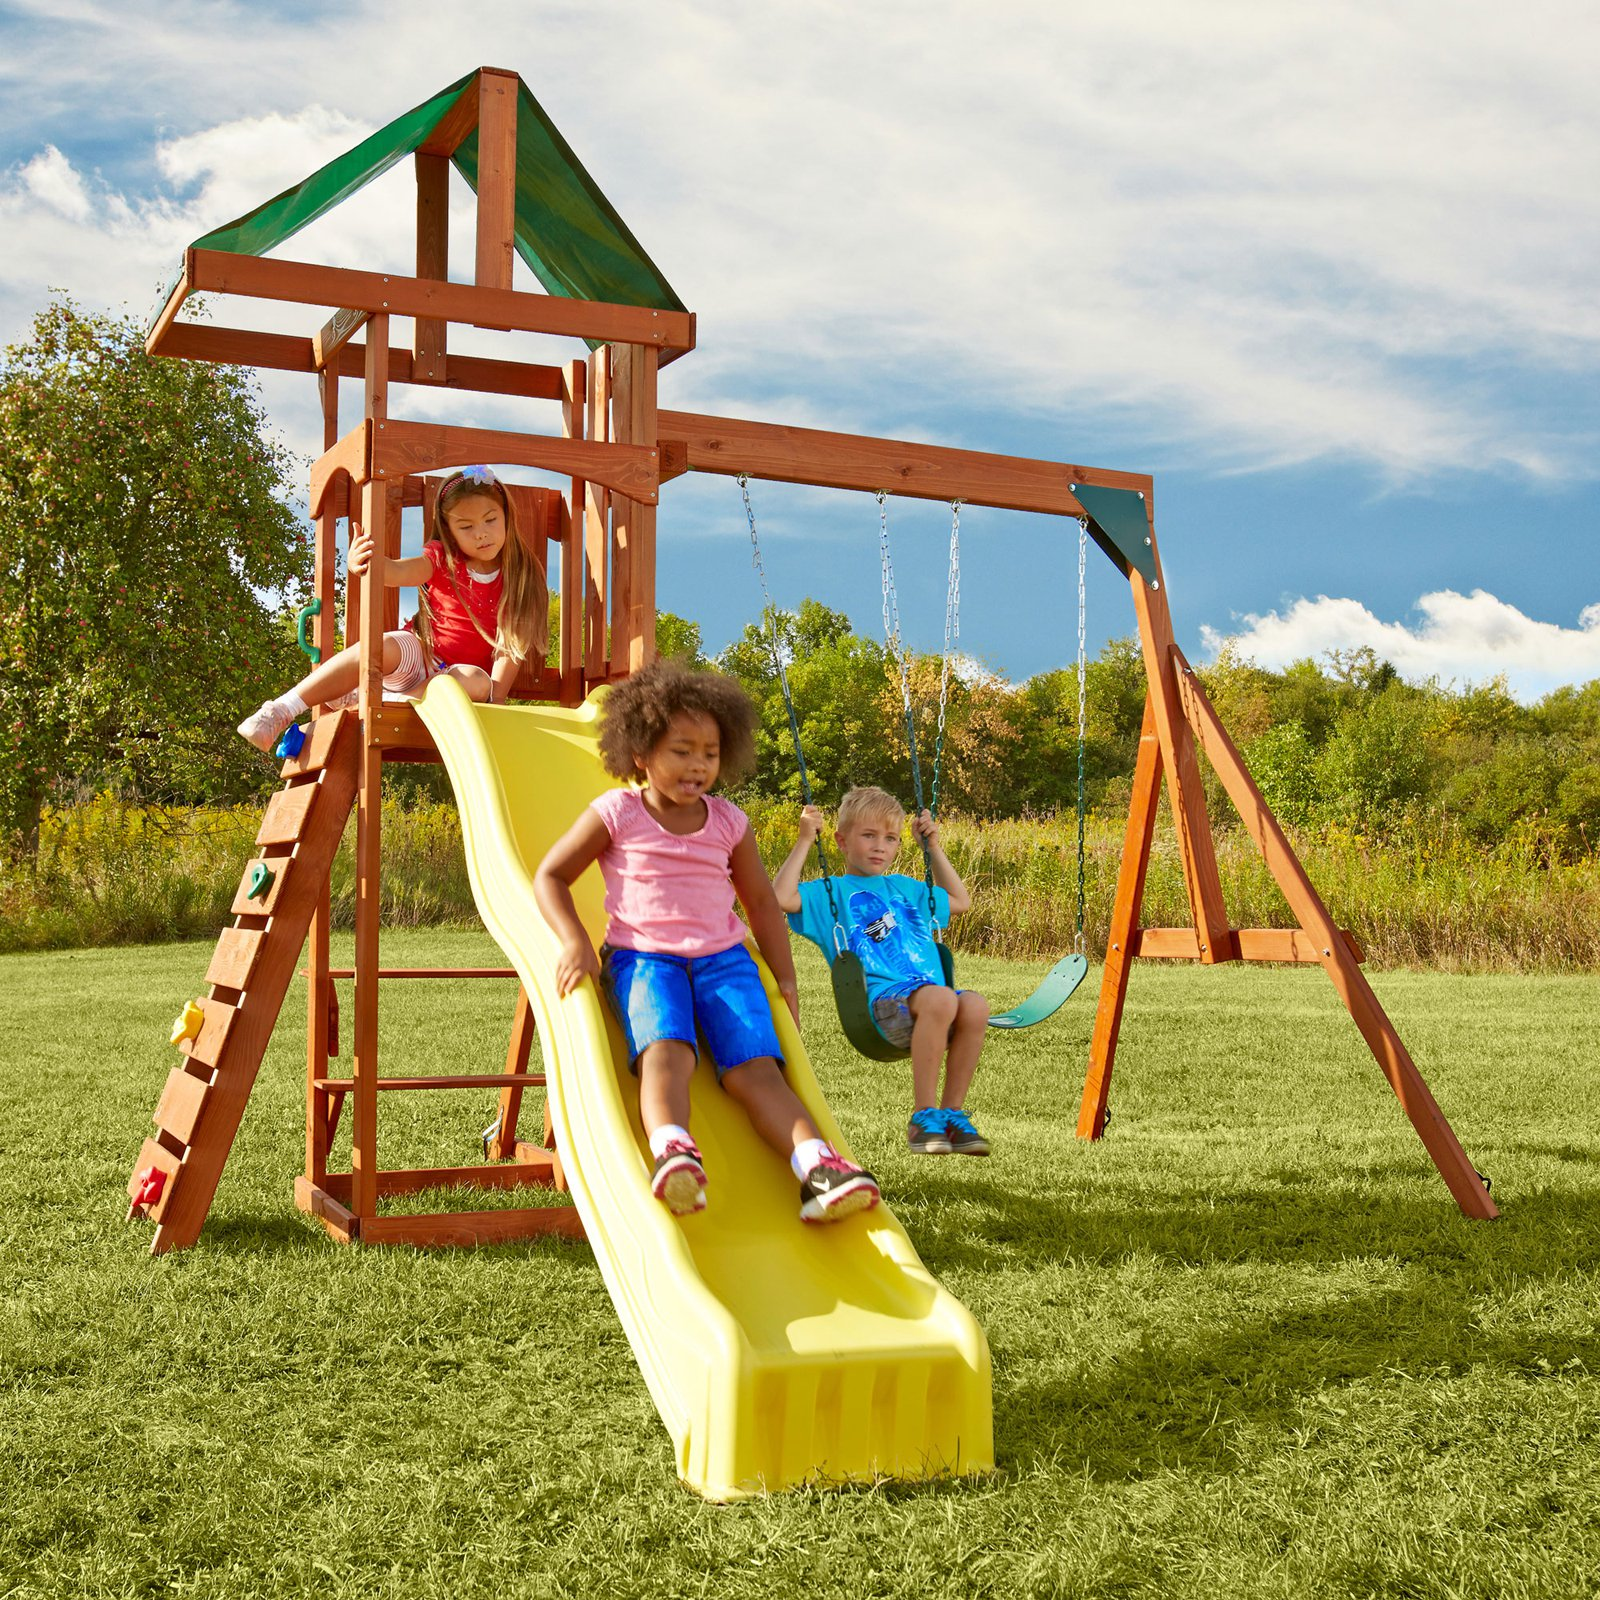 Swing-N-Slide PB 8137 Scrambler Play Set